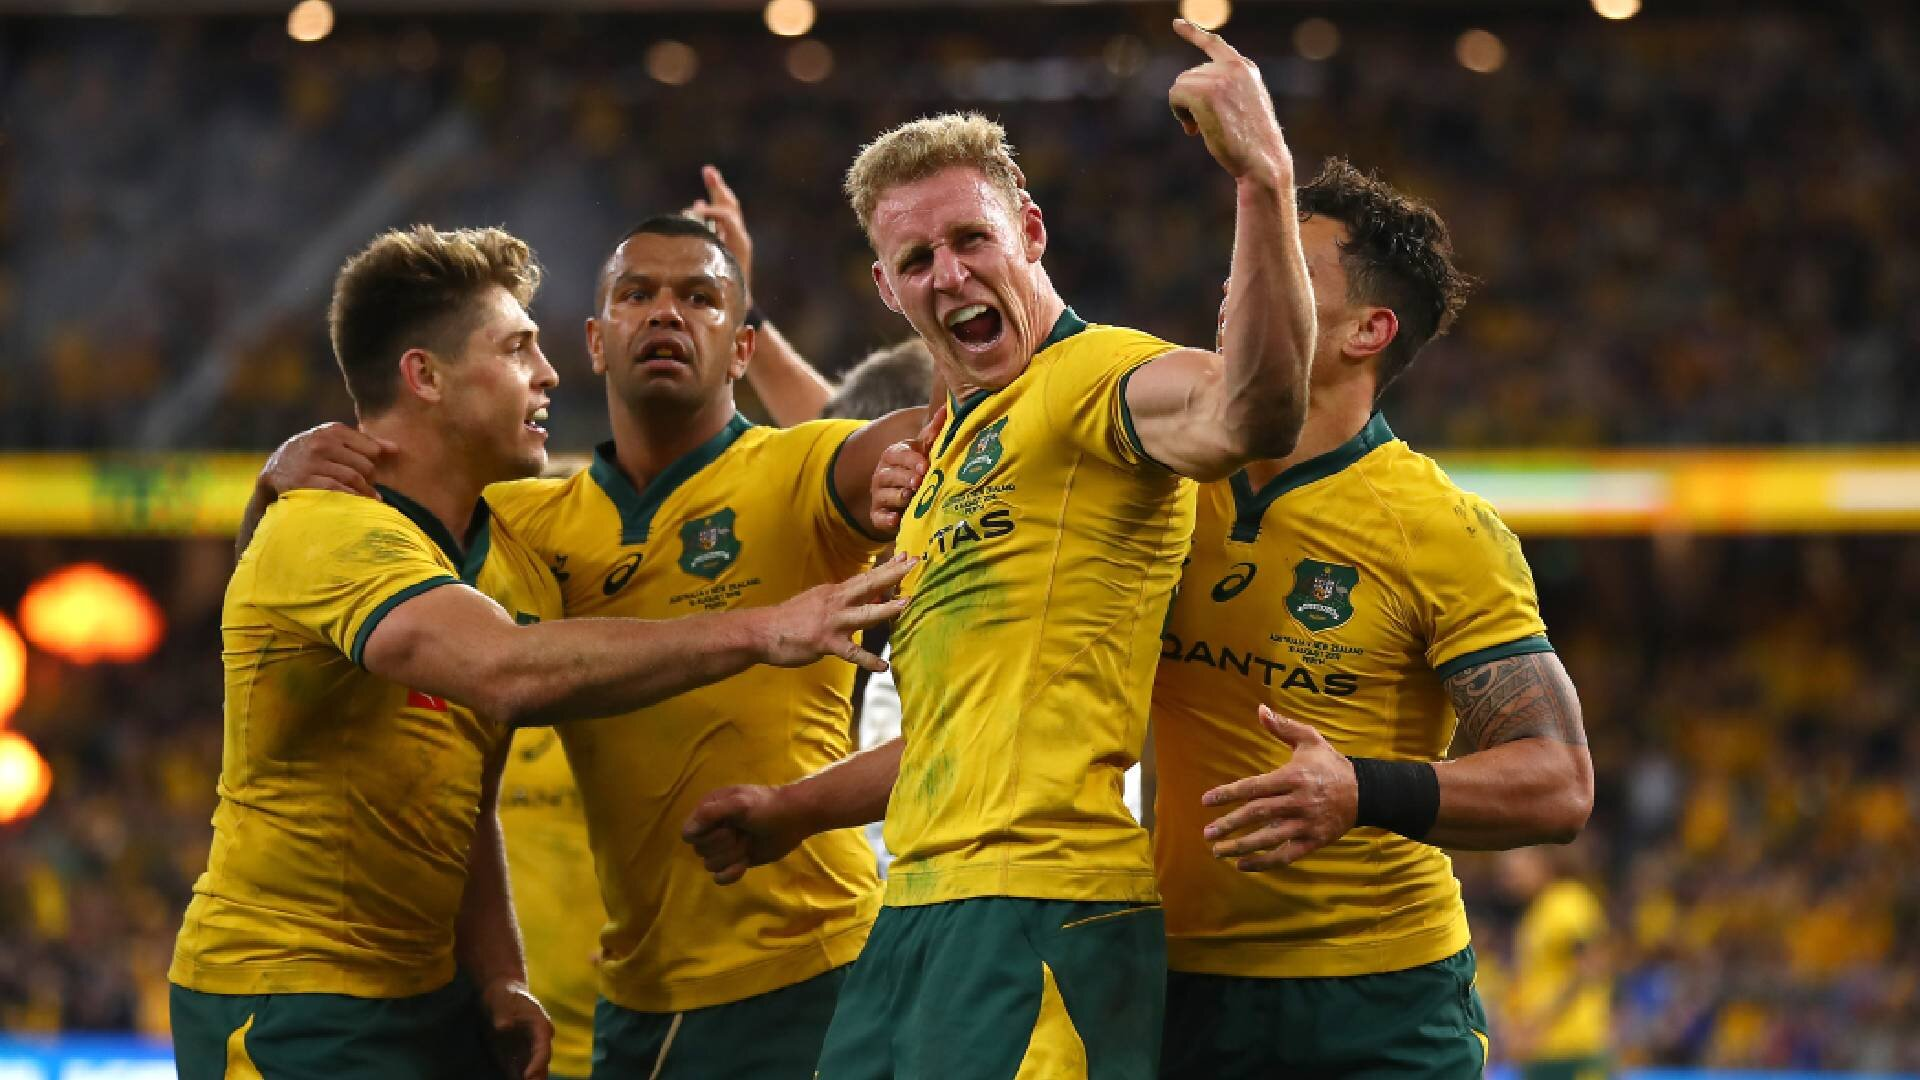 75 percent wage cuts, five Bledisloe Cup tests, no South Africa: Wallabies legend's radical proposal to save Australian rugby